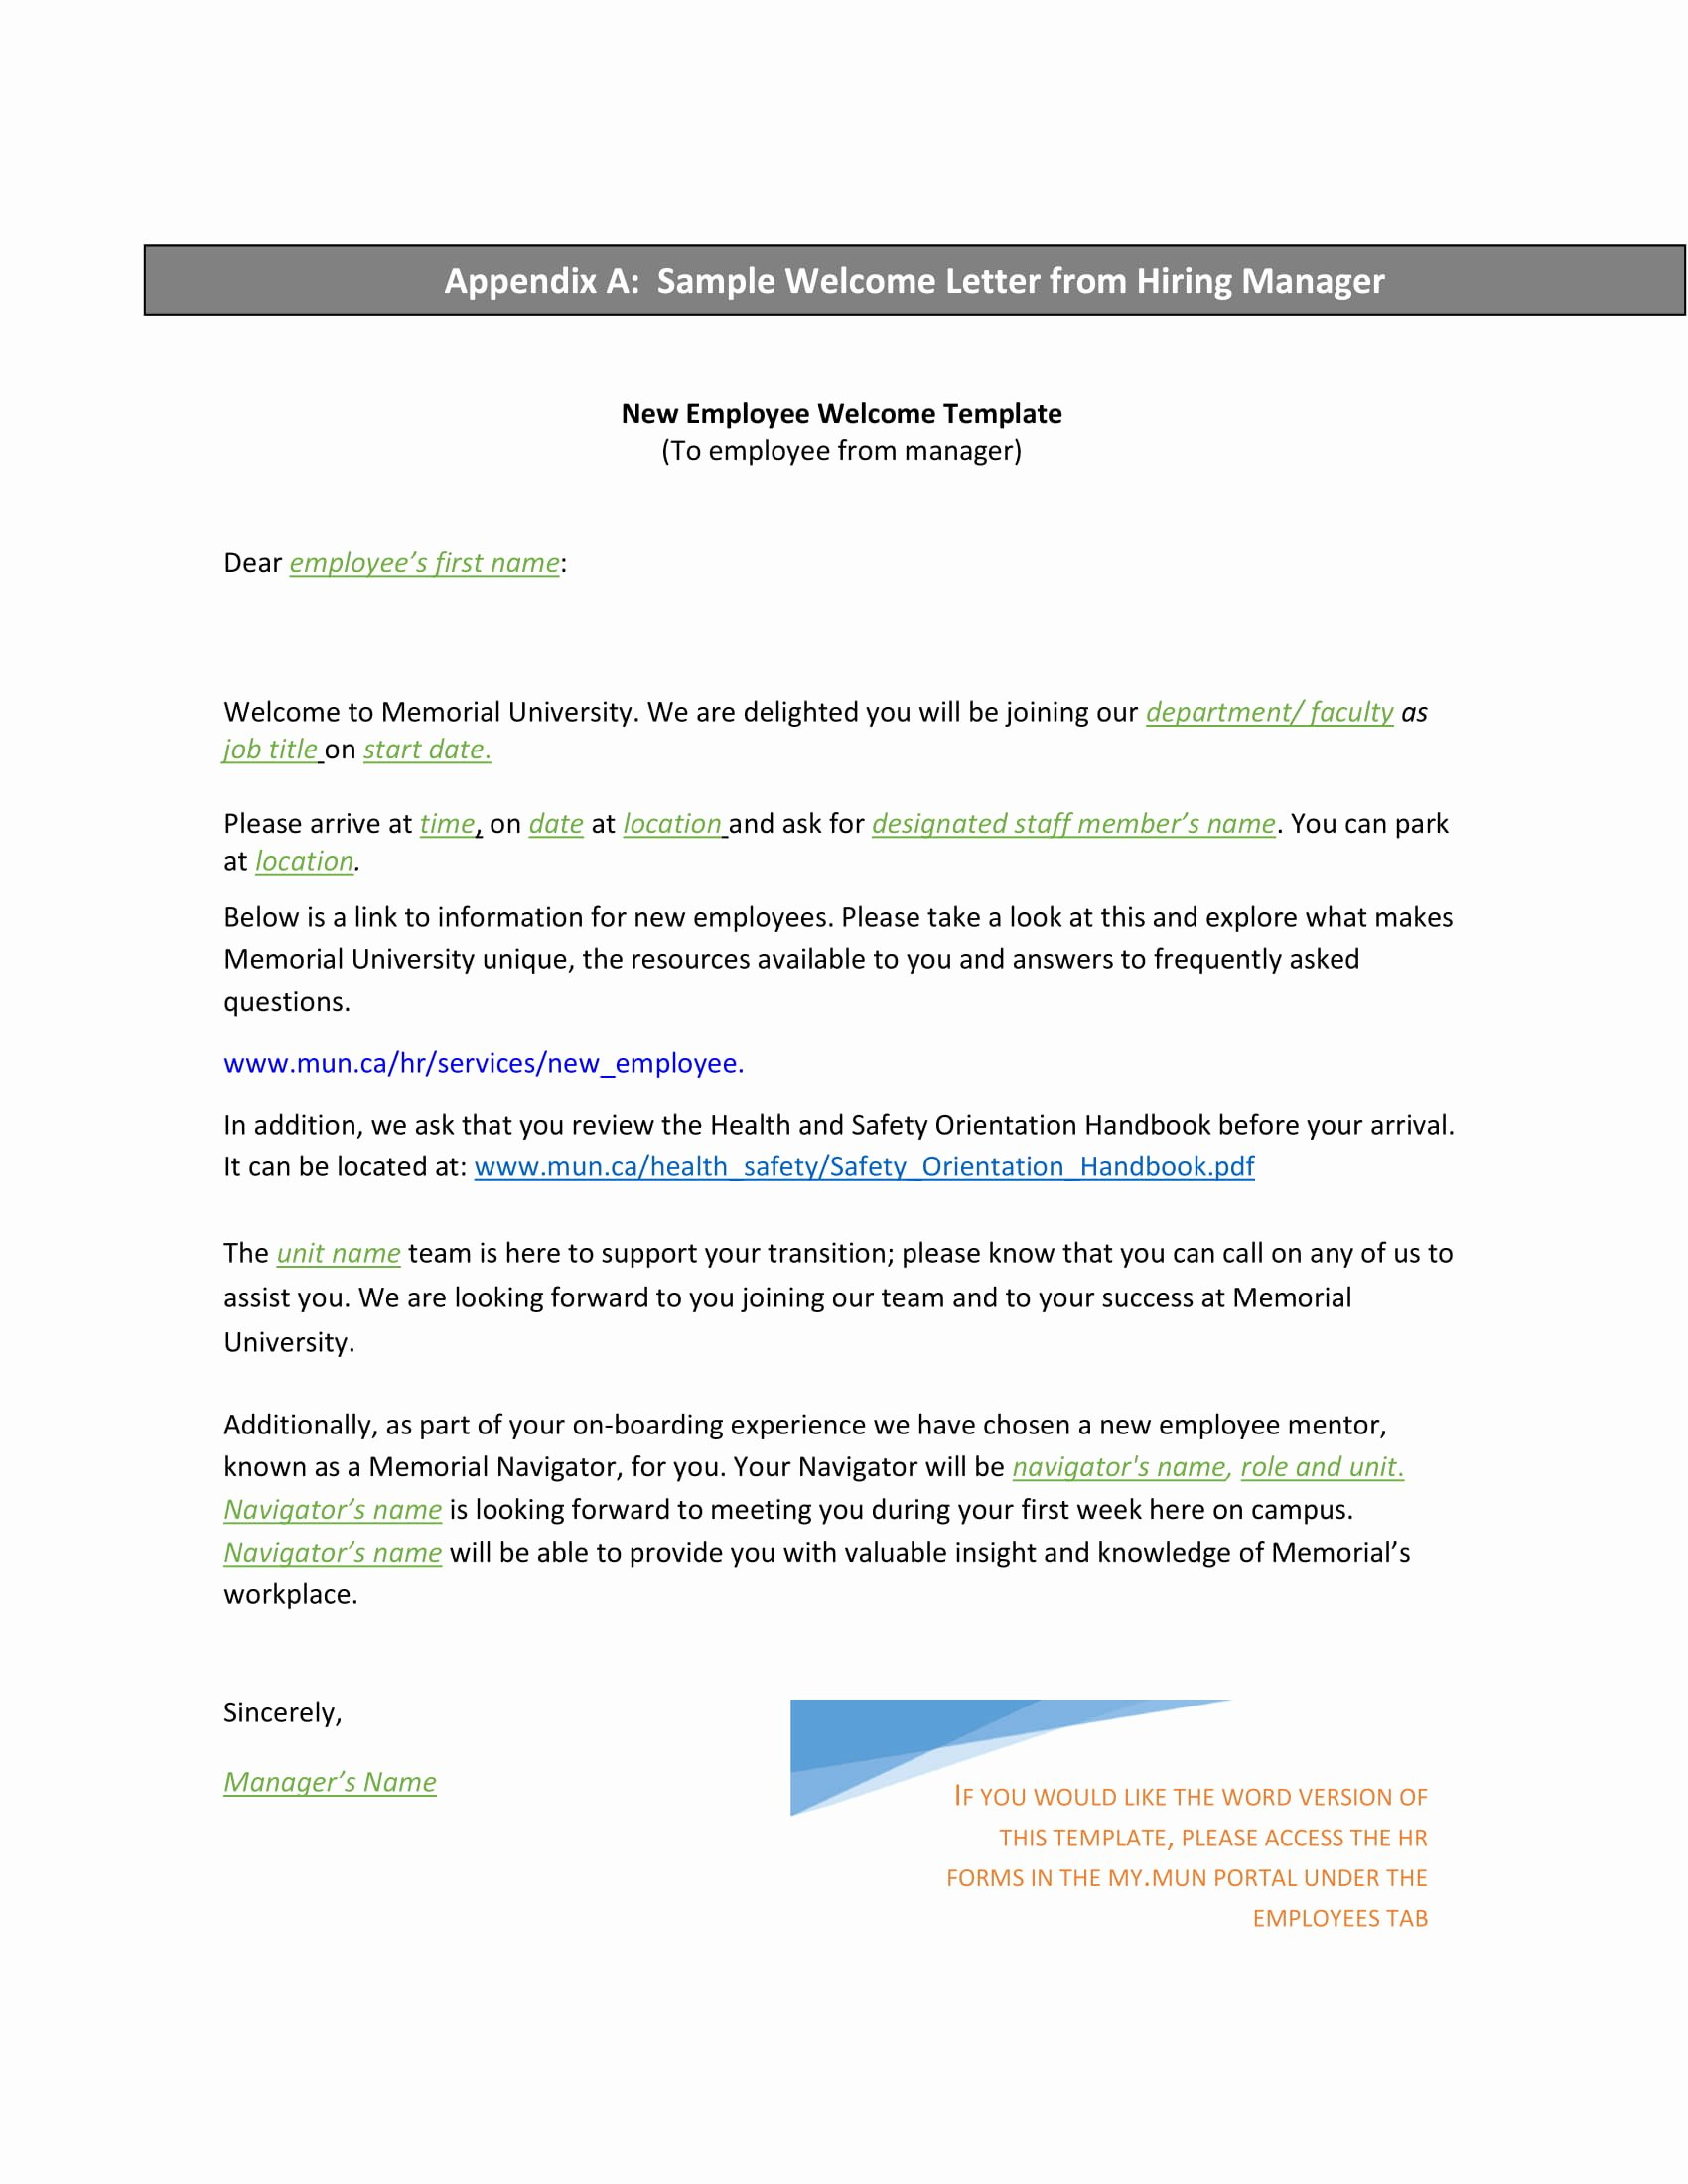 Sample Letters for Employees Beautiful 9 New Hire Wel E Letter Examples Pdf